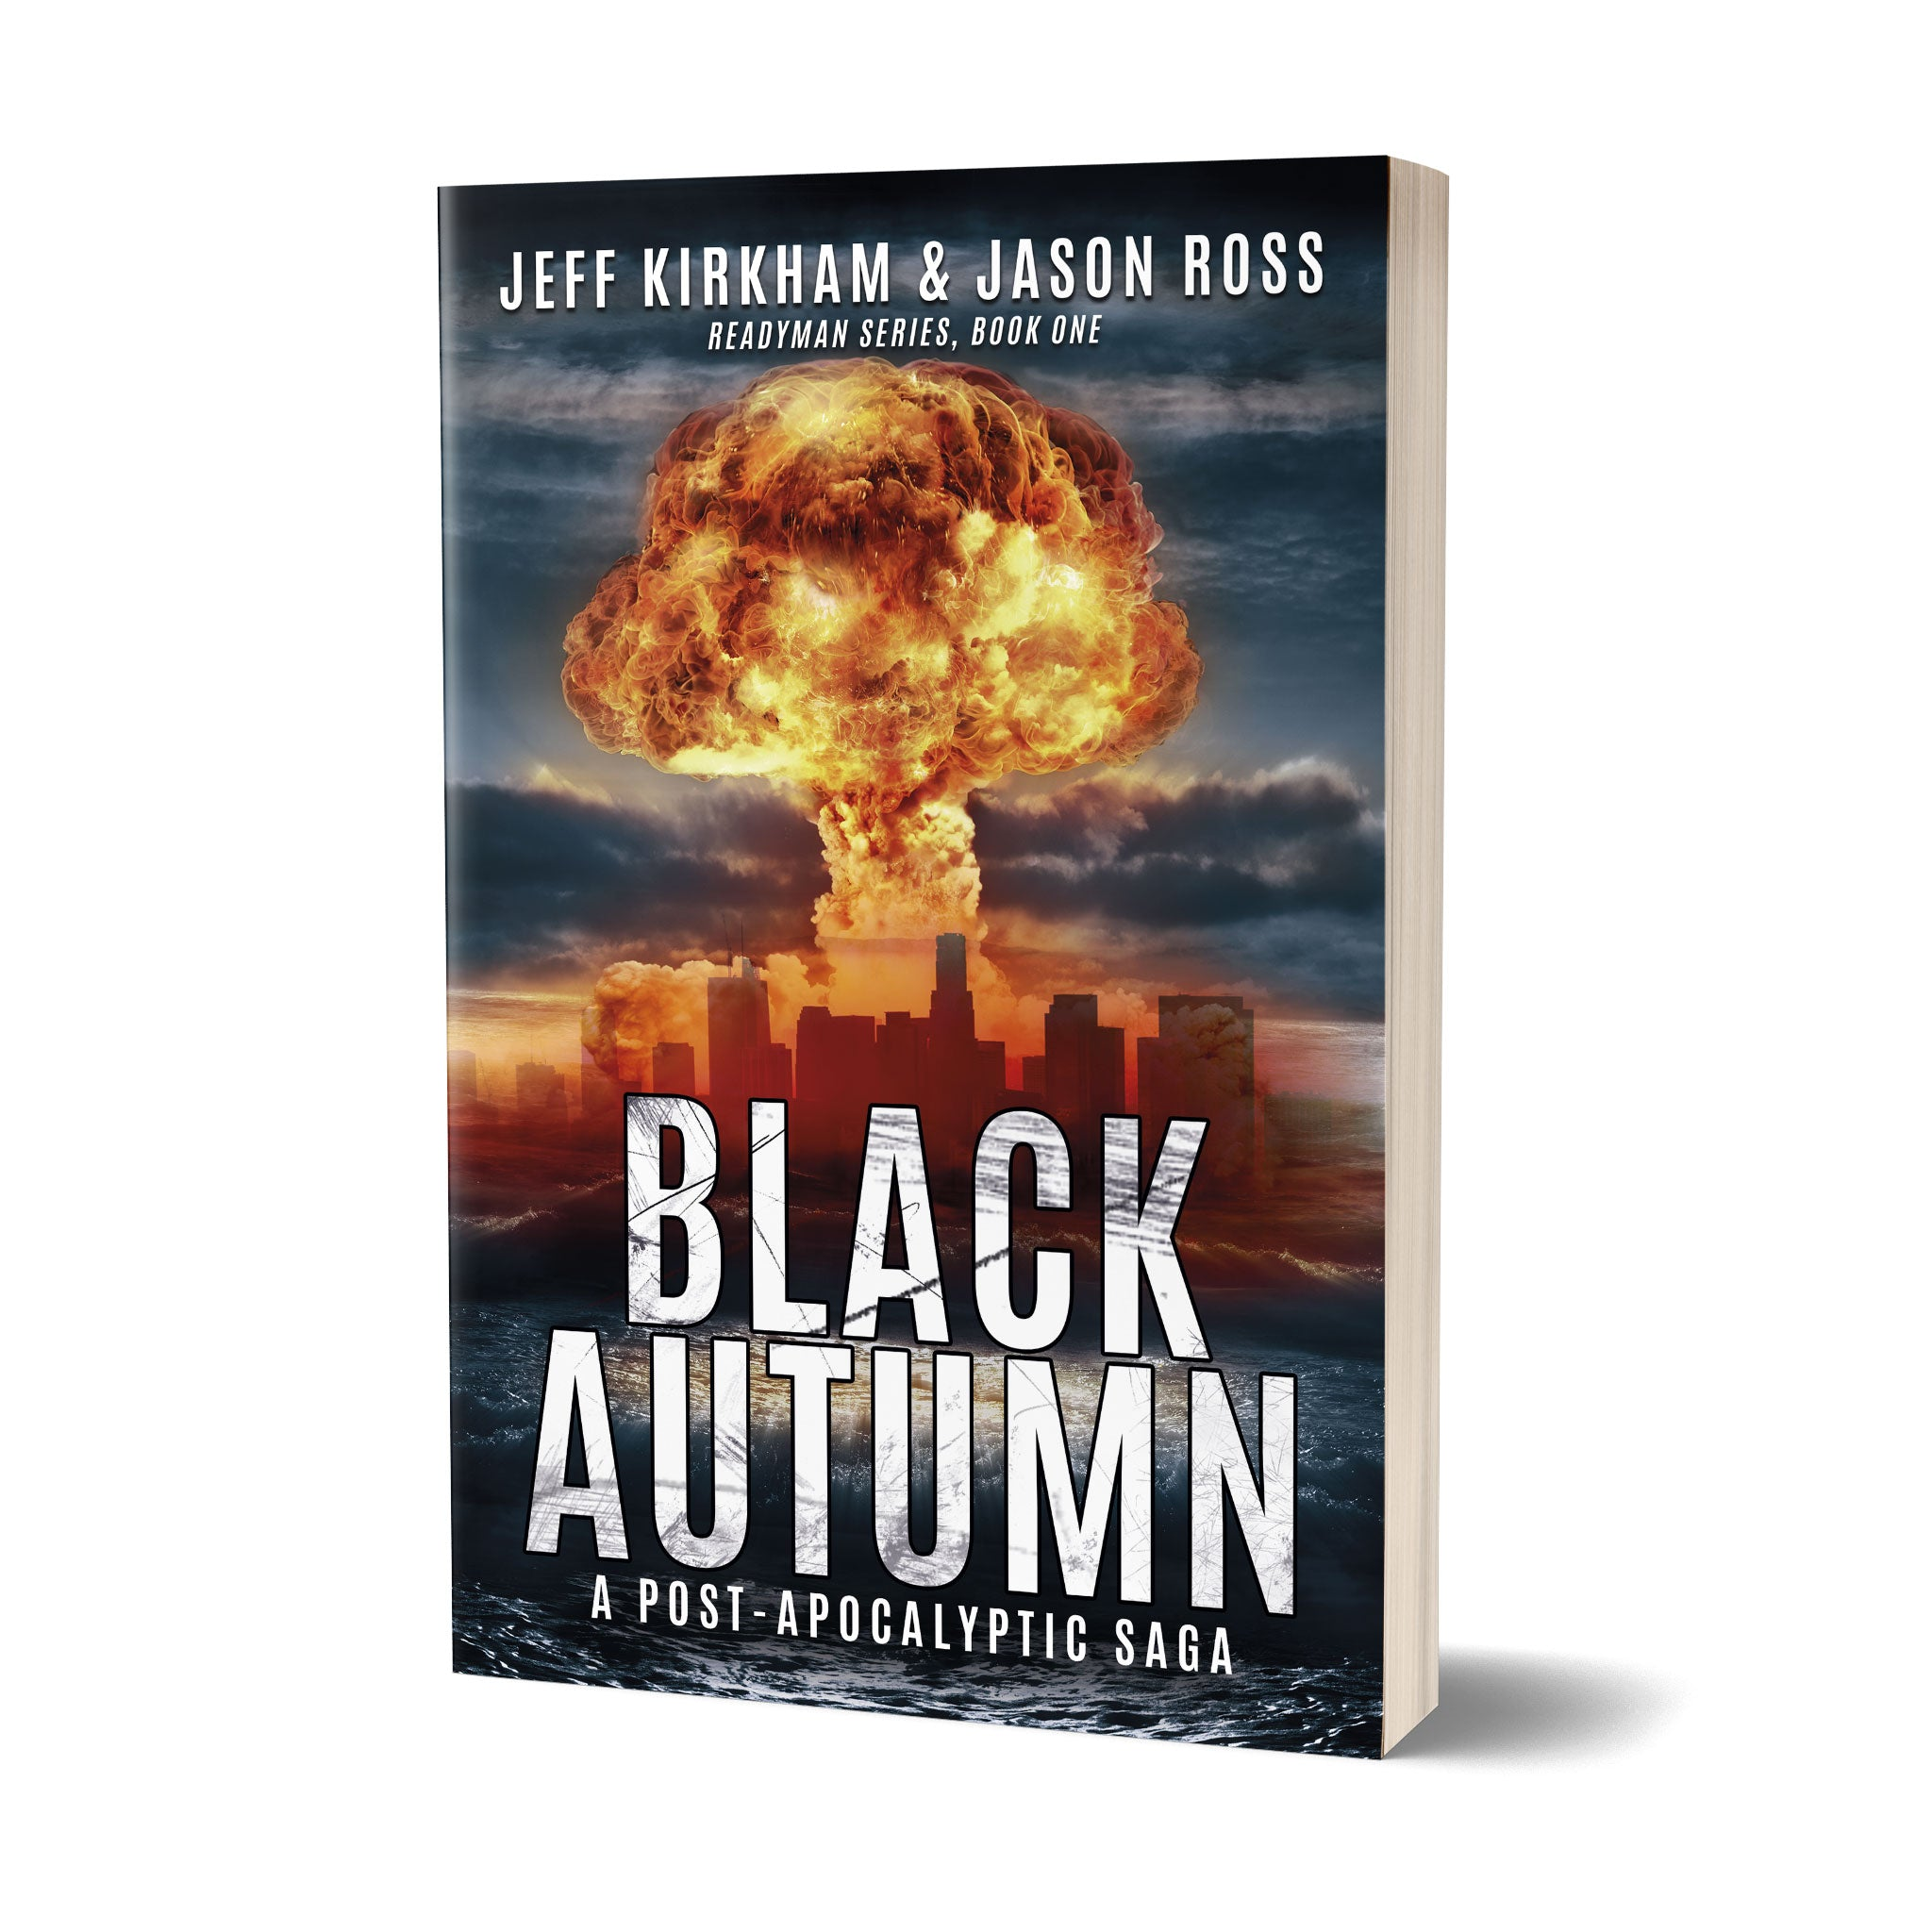 Black Autumn Paperback